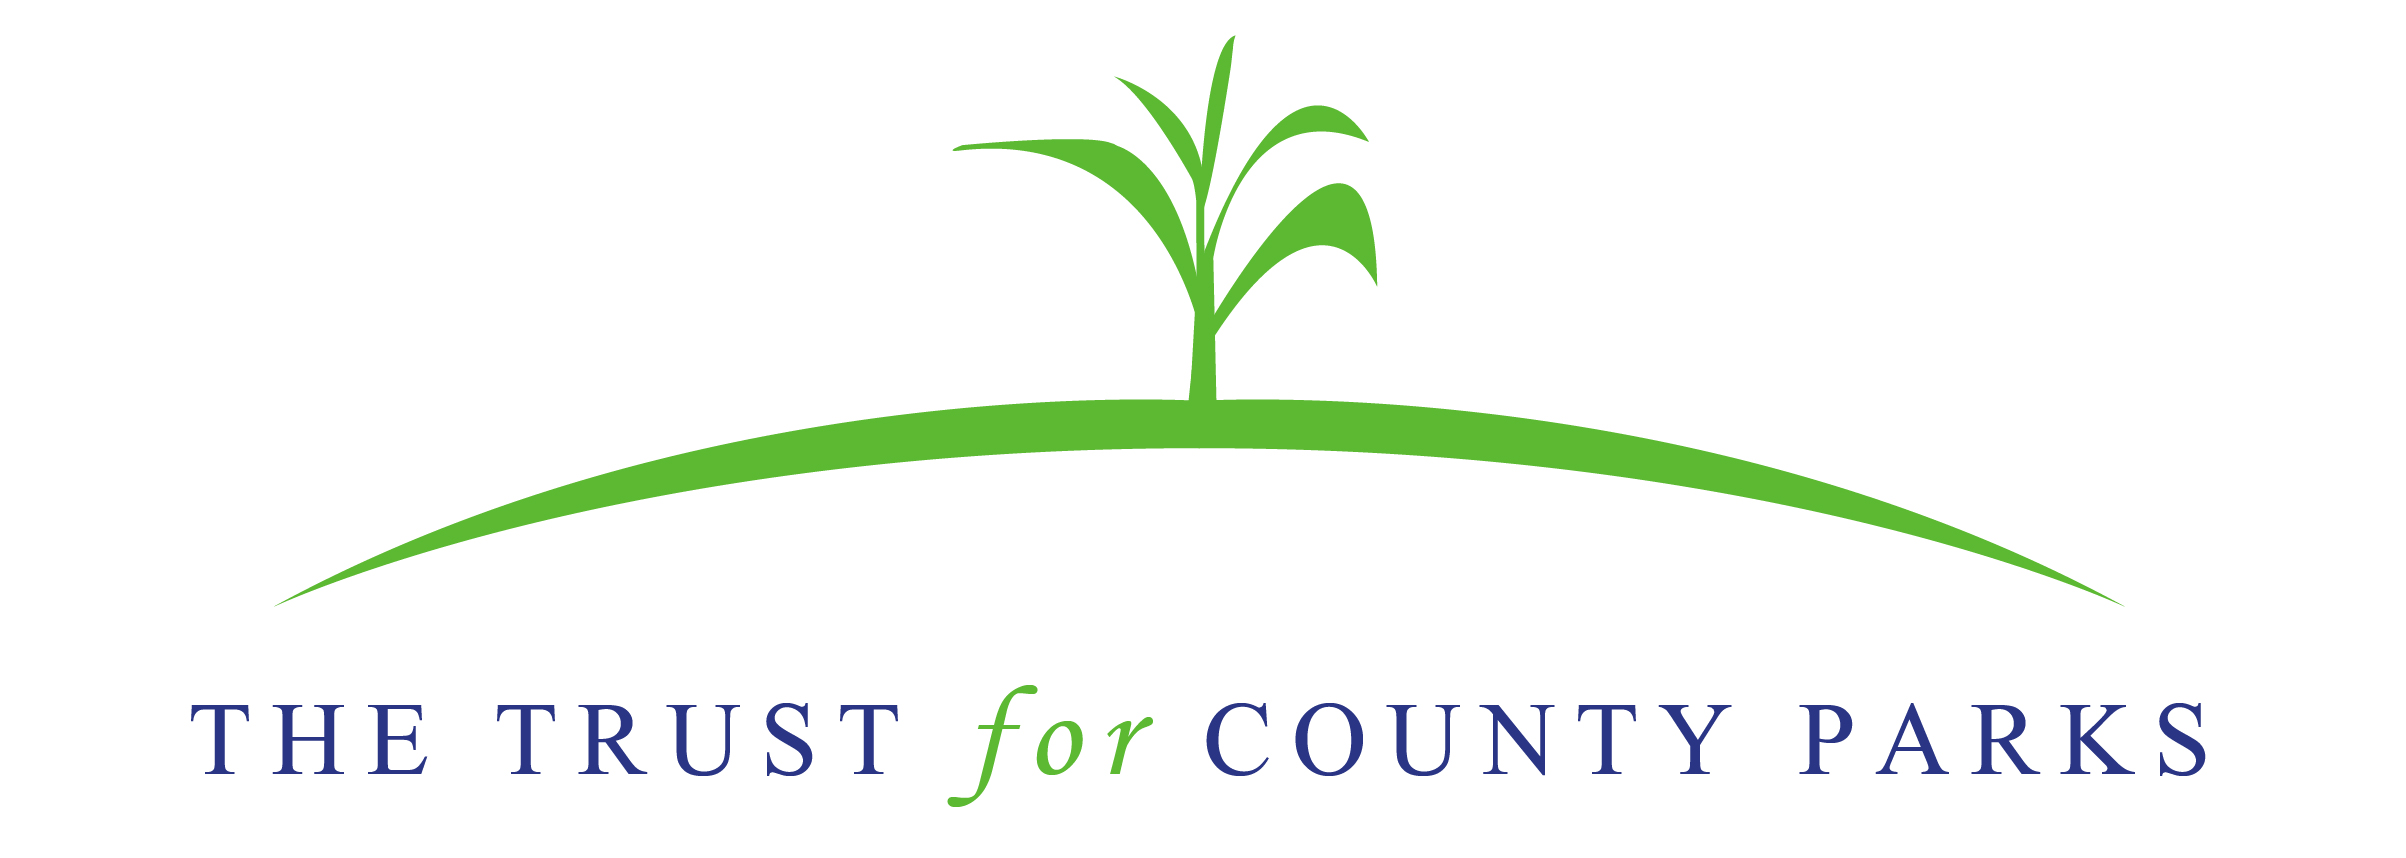 Image is a Clickable link to the Trust of County Parks PayPal page.